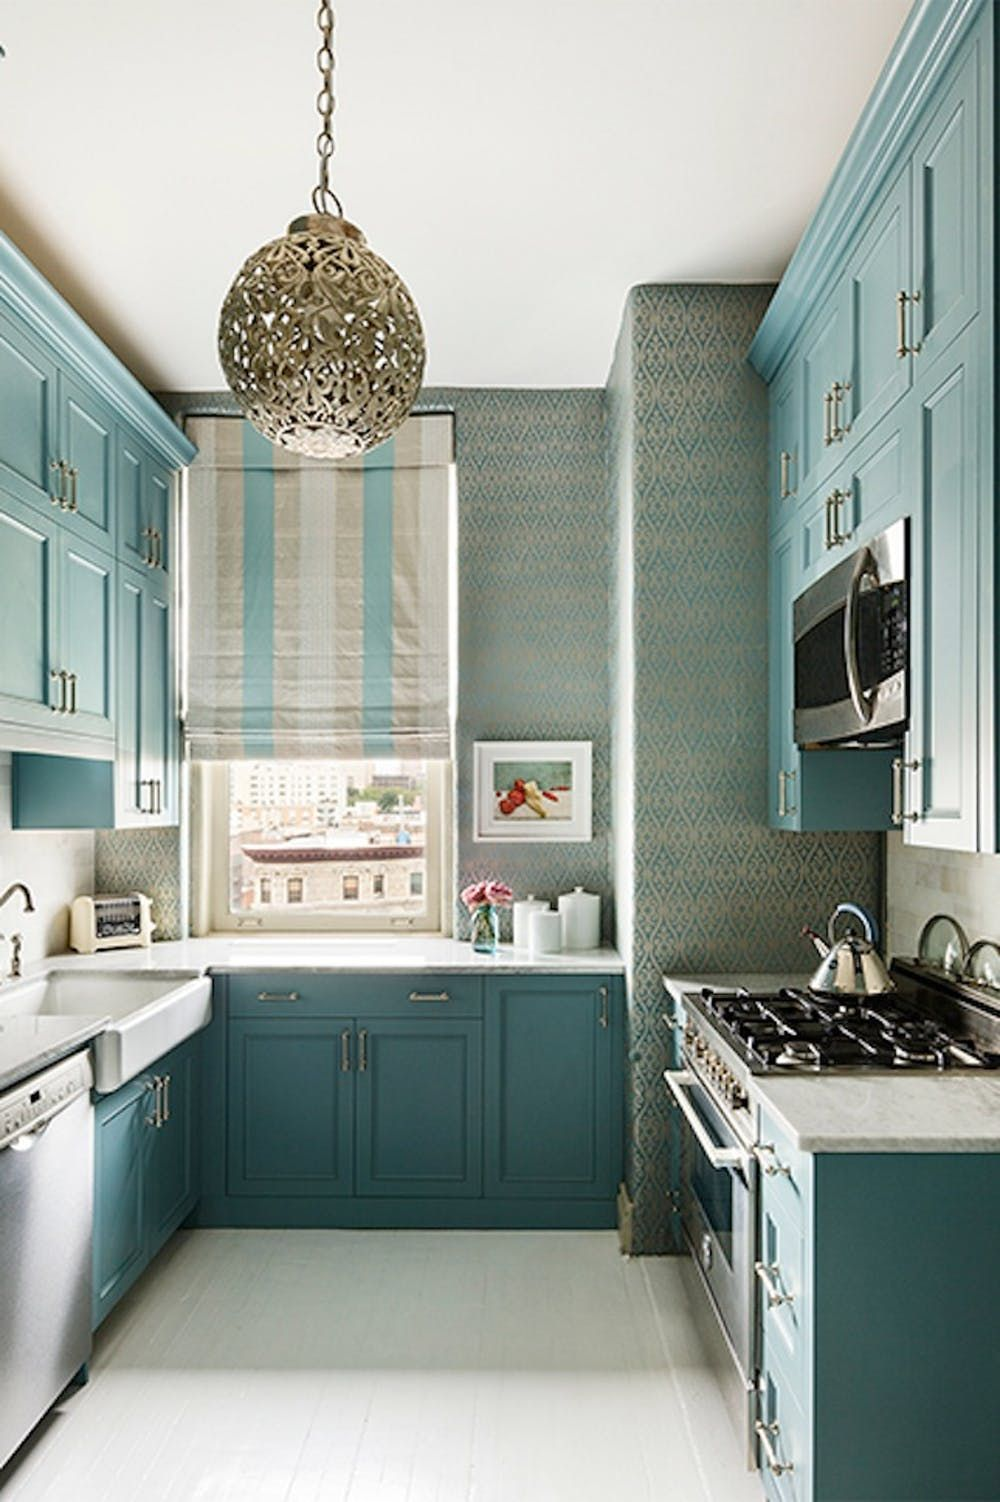 How To Combine Warm Cool Colors Like An Expert In Your Home Kitchen Design Small Kitchen Remodel Small Interior Design Kitchen